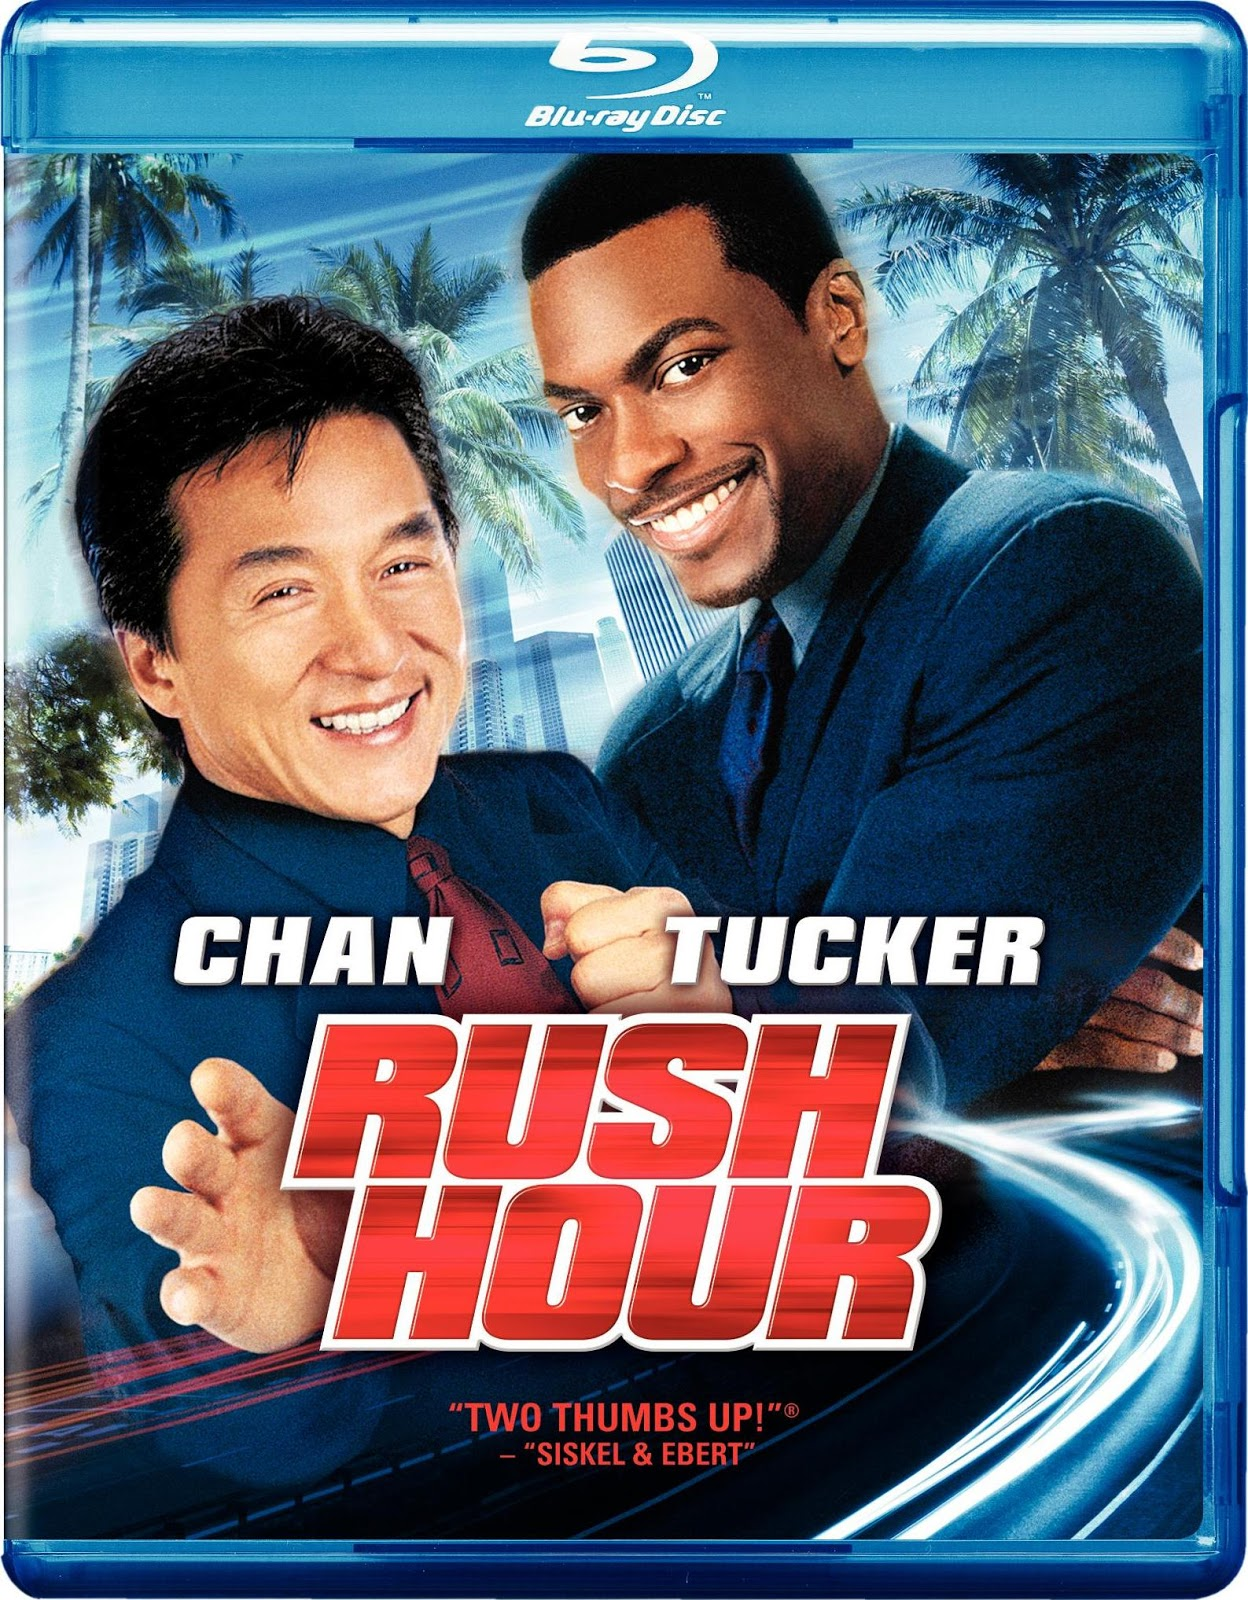 Rush Hour 1998 Dual Audio 720p BRRip 500MB HEVC world4ufree.ws , hollywood movie Barbie Rush Hour 1998 hindi dubbed dual audio hindi english languages original audio 720p hevc BRRip hdrip 400mb free download 700mb or watch online at world4ufree.ws